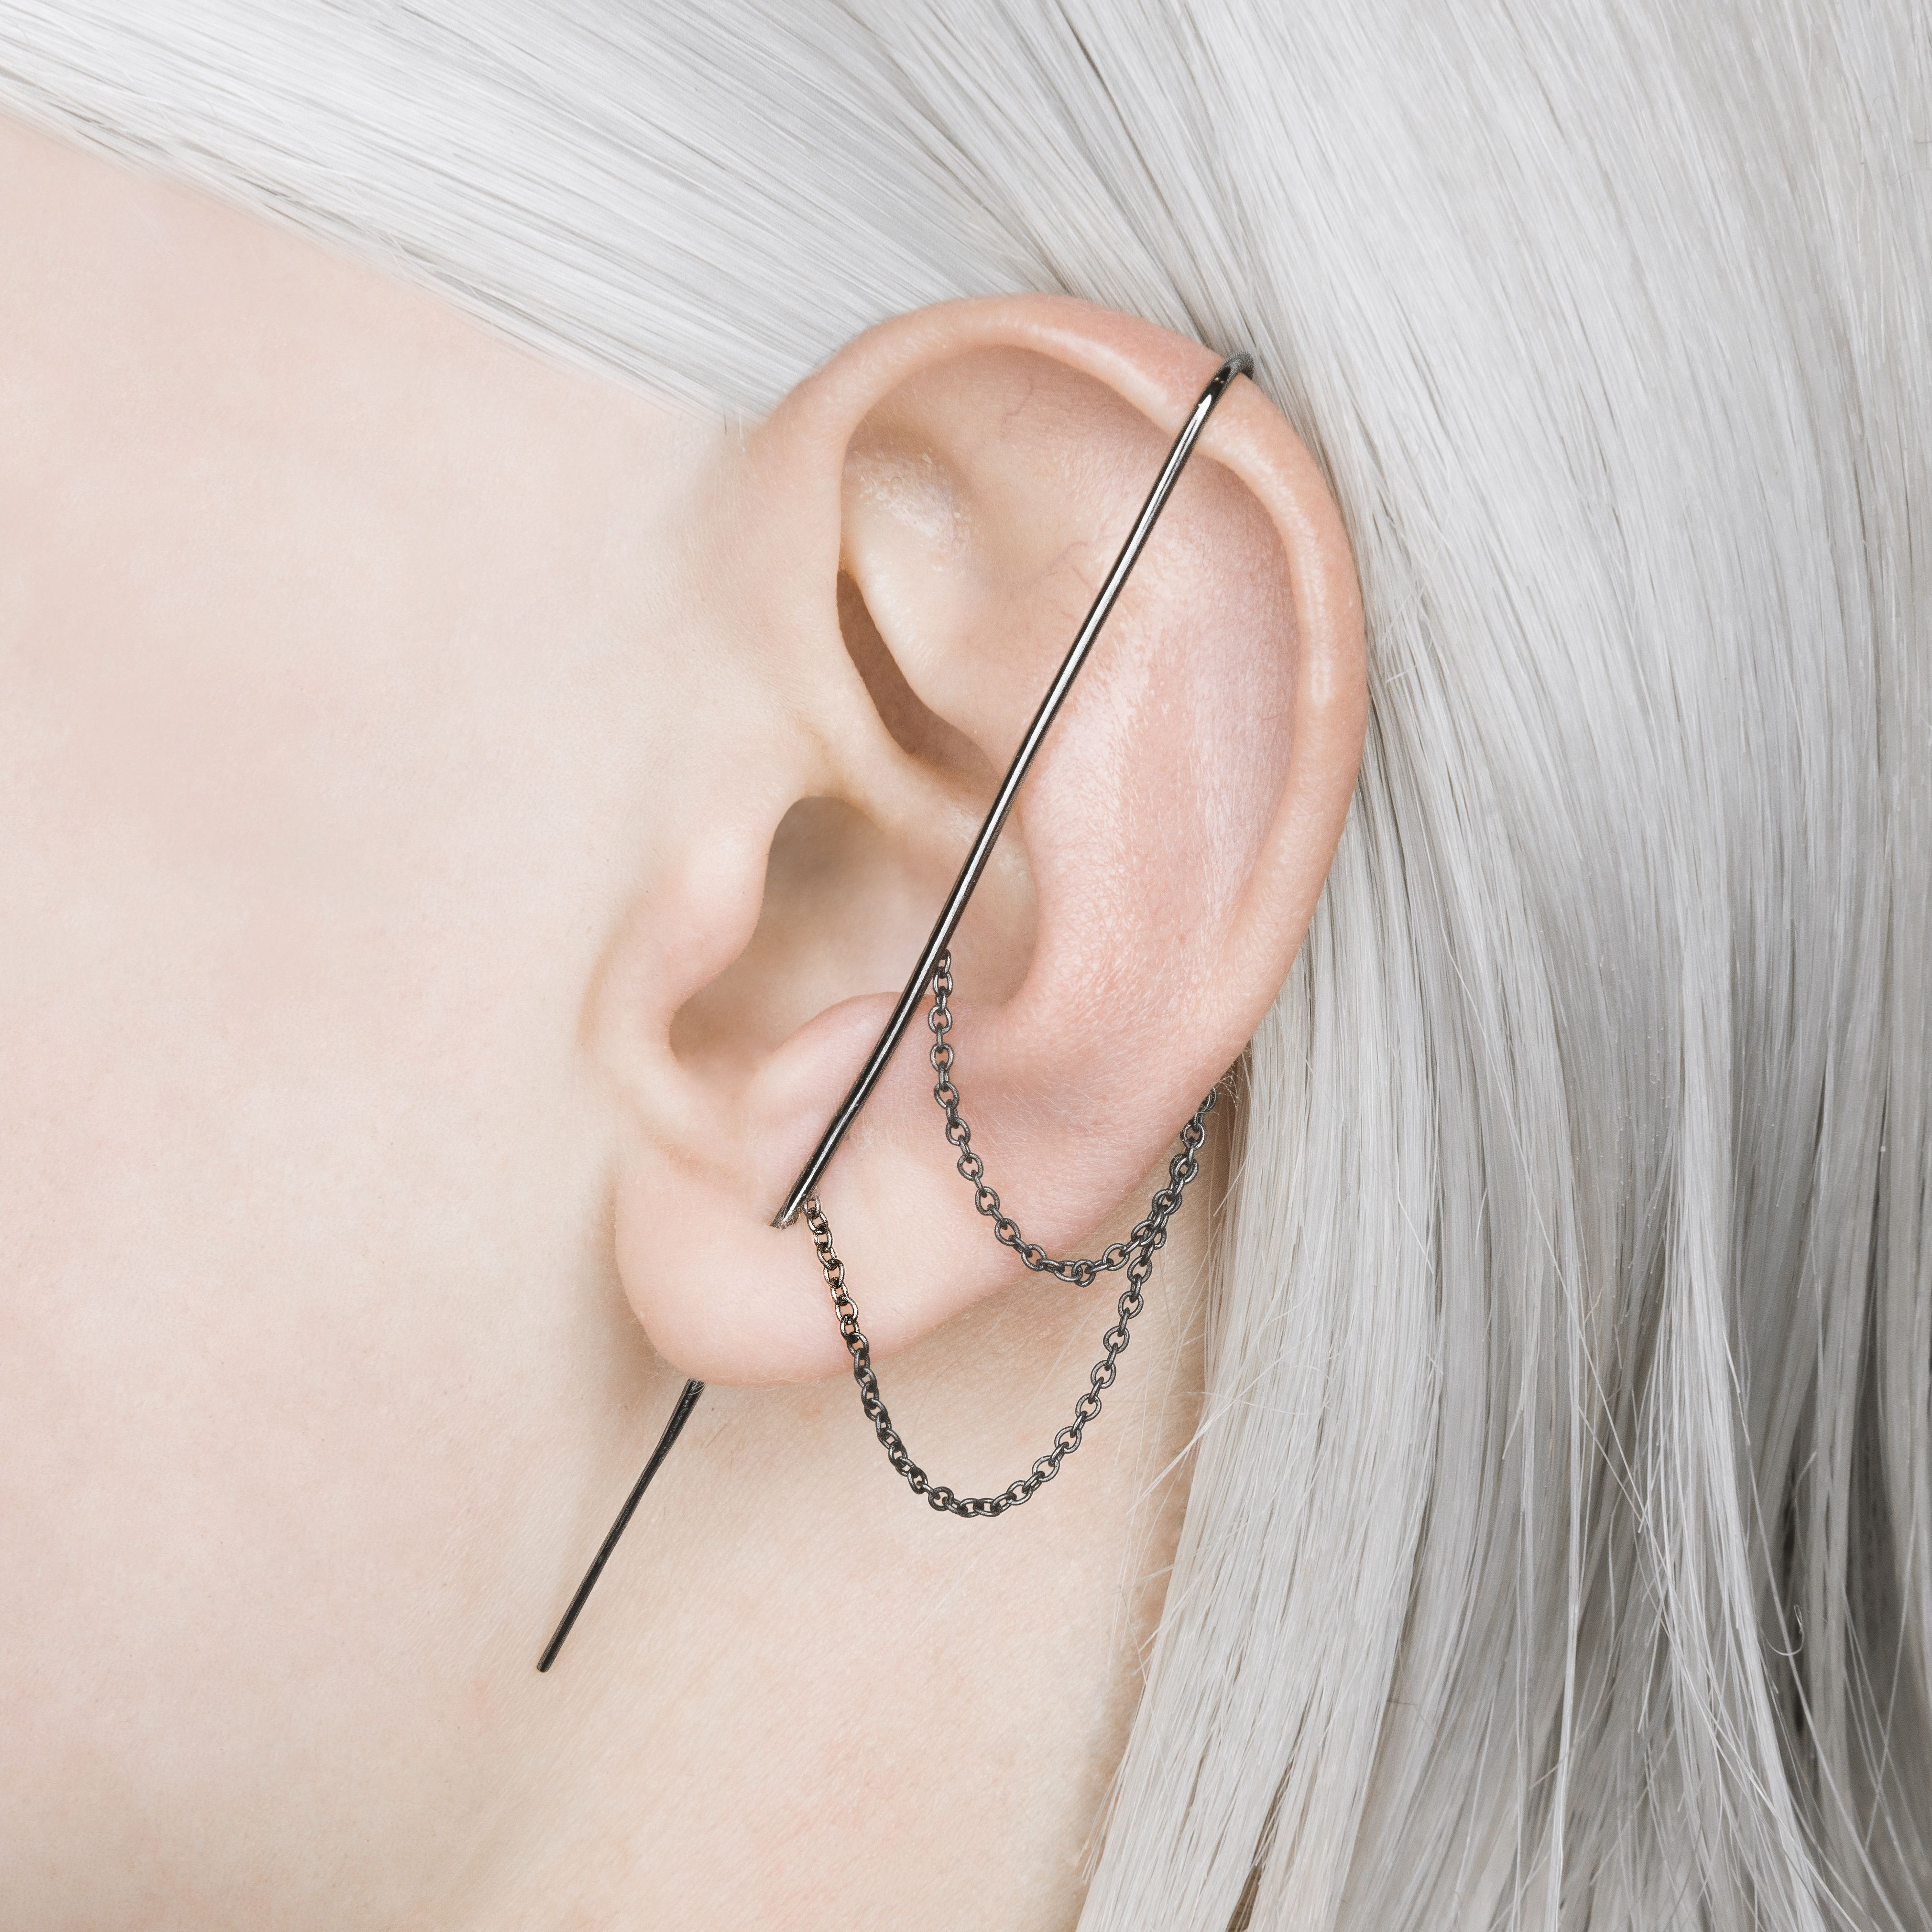 cartilage or chain cuff white zircon earring ring girl gift Minimalist 14k gold-plated silver earring